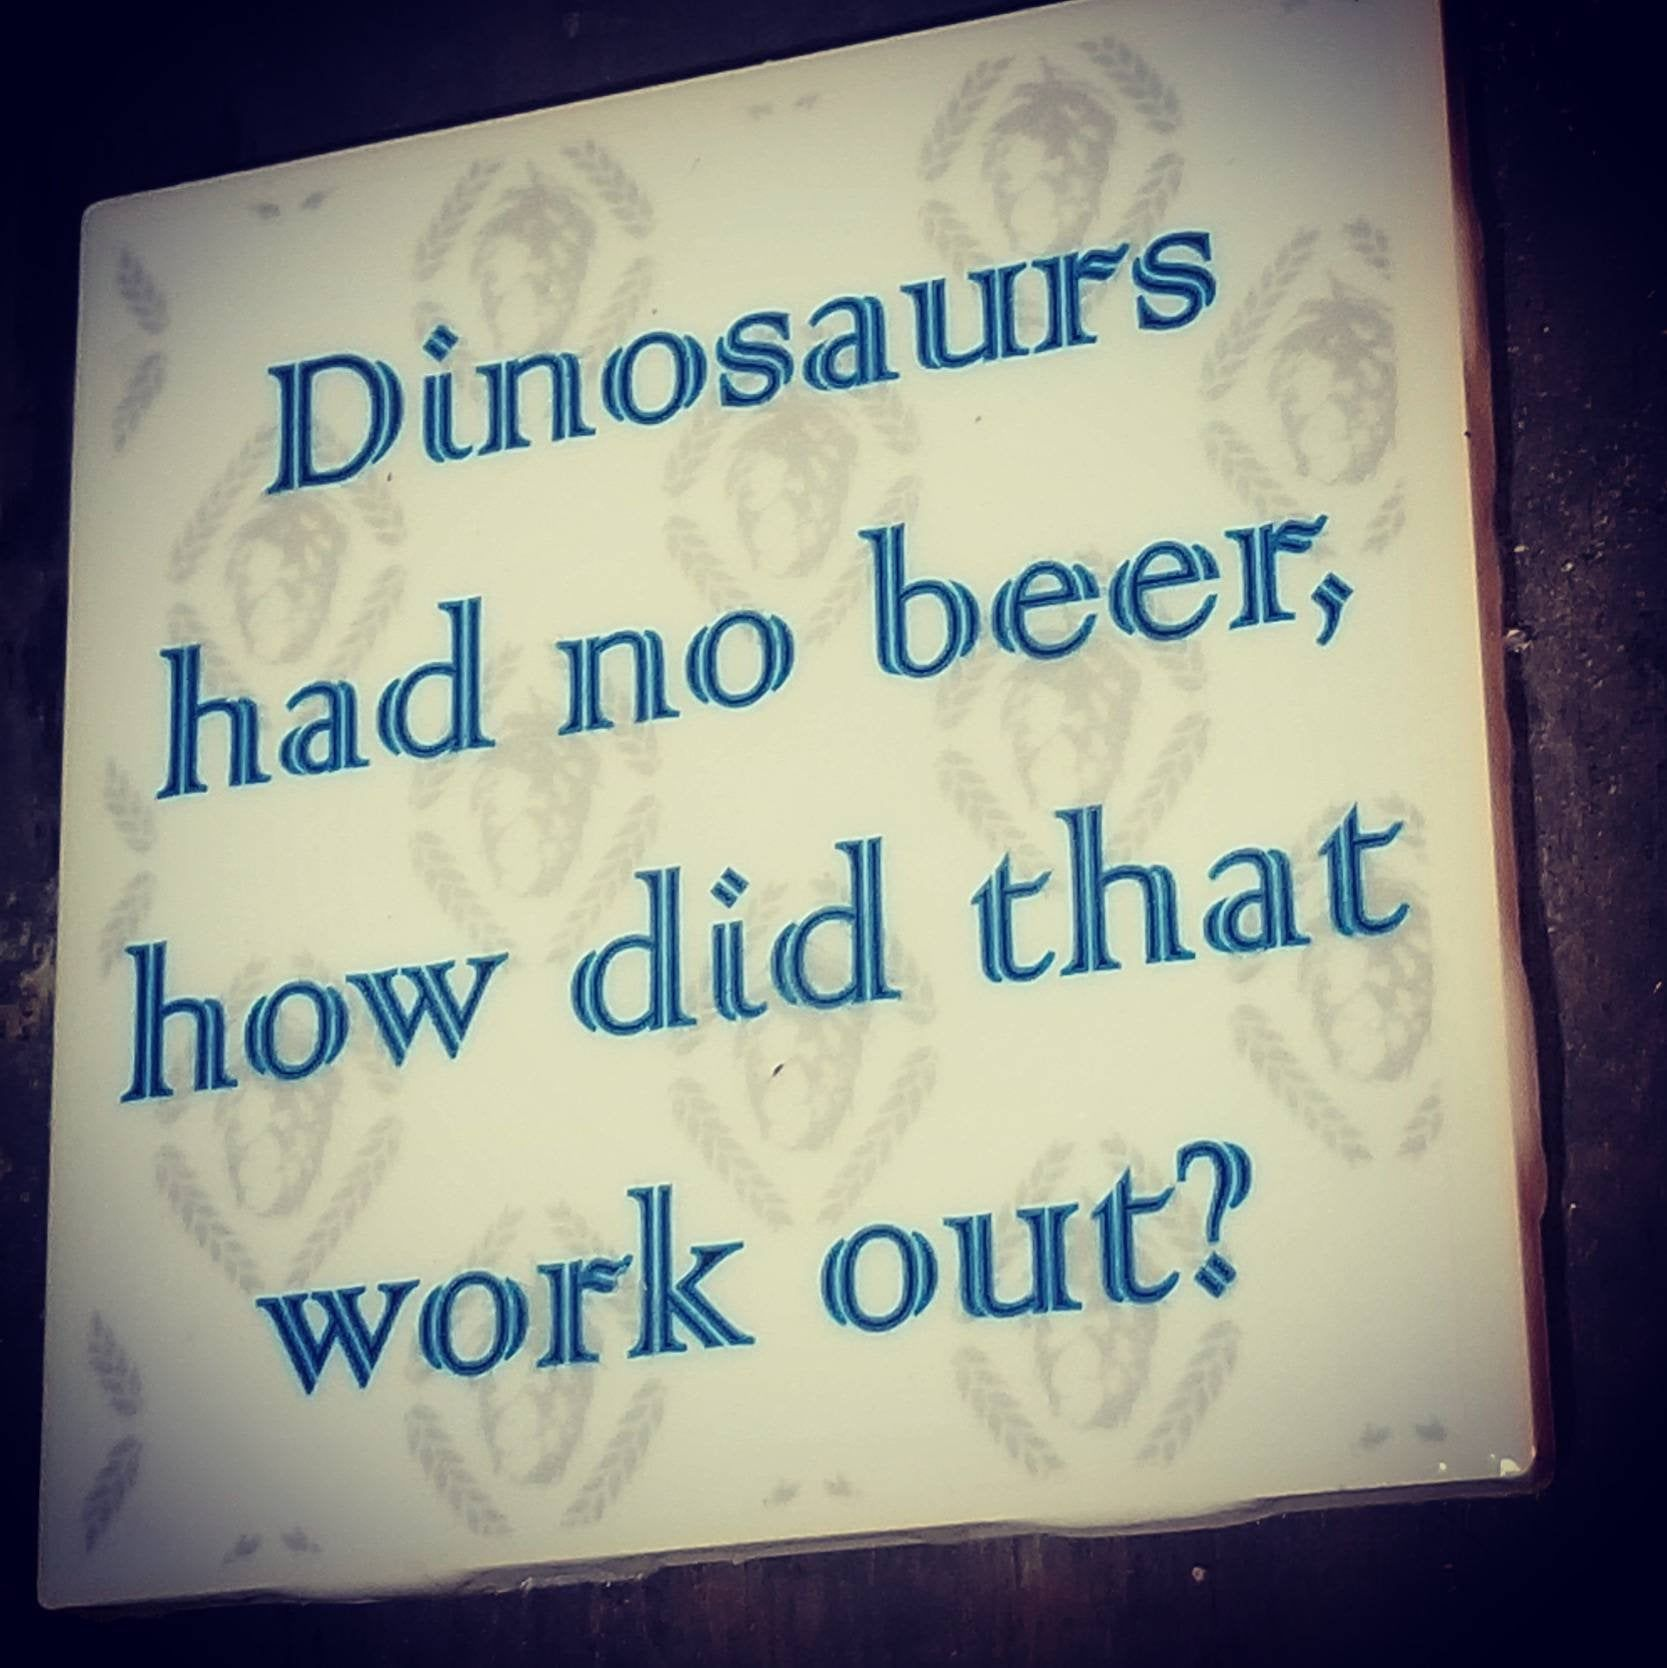 home accessories logo #home #accessories #homeaccessories Tile Coaster Set - Dinosaurs had no beer, how did that work out - Beer Gear - Craft Beer Gift - Beer Home Accessories by CraftHouseTC on Etsy